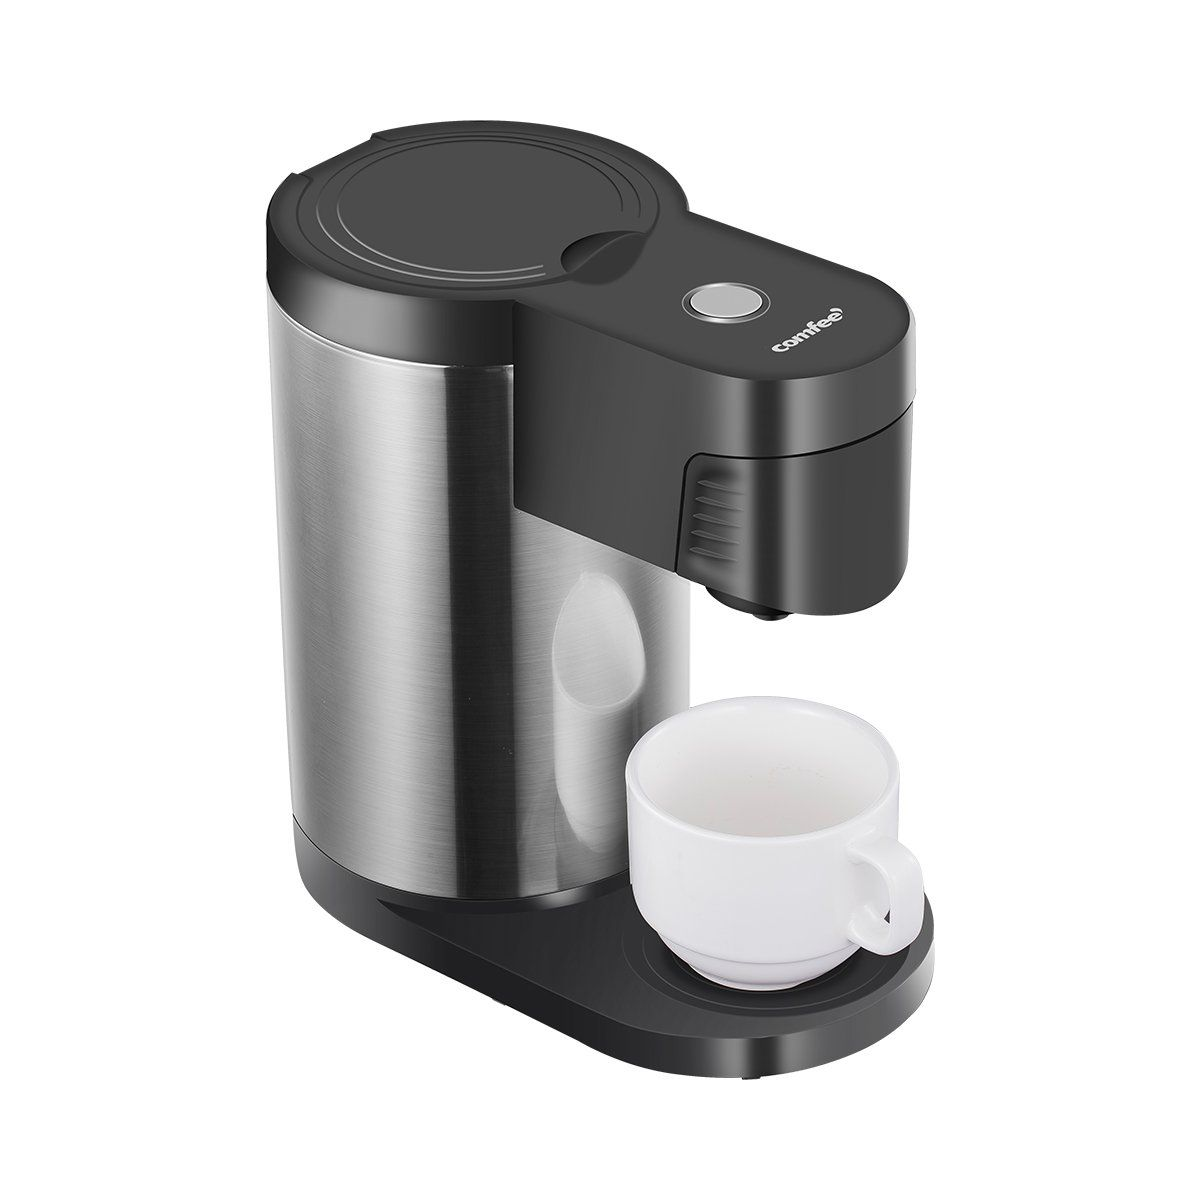 Comfee Single Serve Coffee Maker Brewers One Cup Coffee Mechine For Most Single Cup Pods Including Pods Chec Single Serve Coffee Makers Coffee Maker Coffee